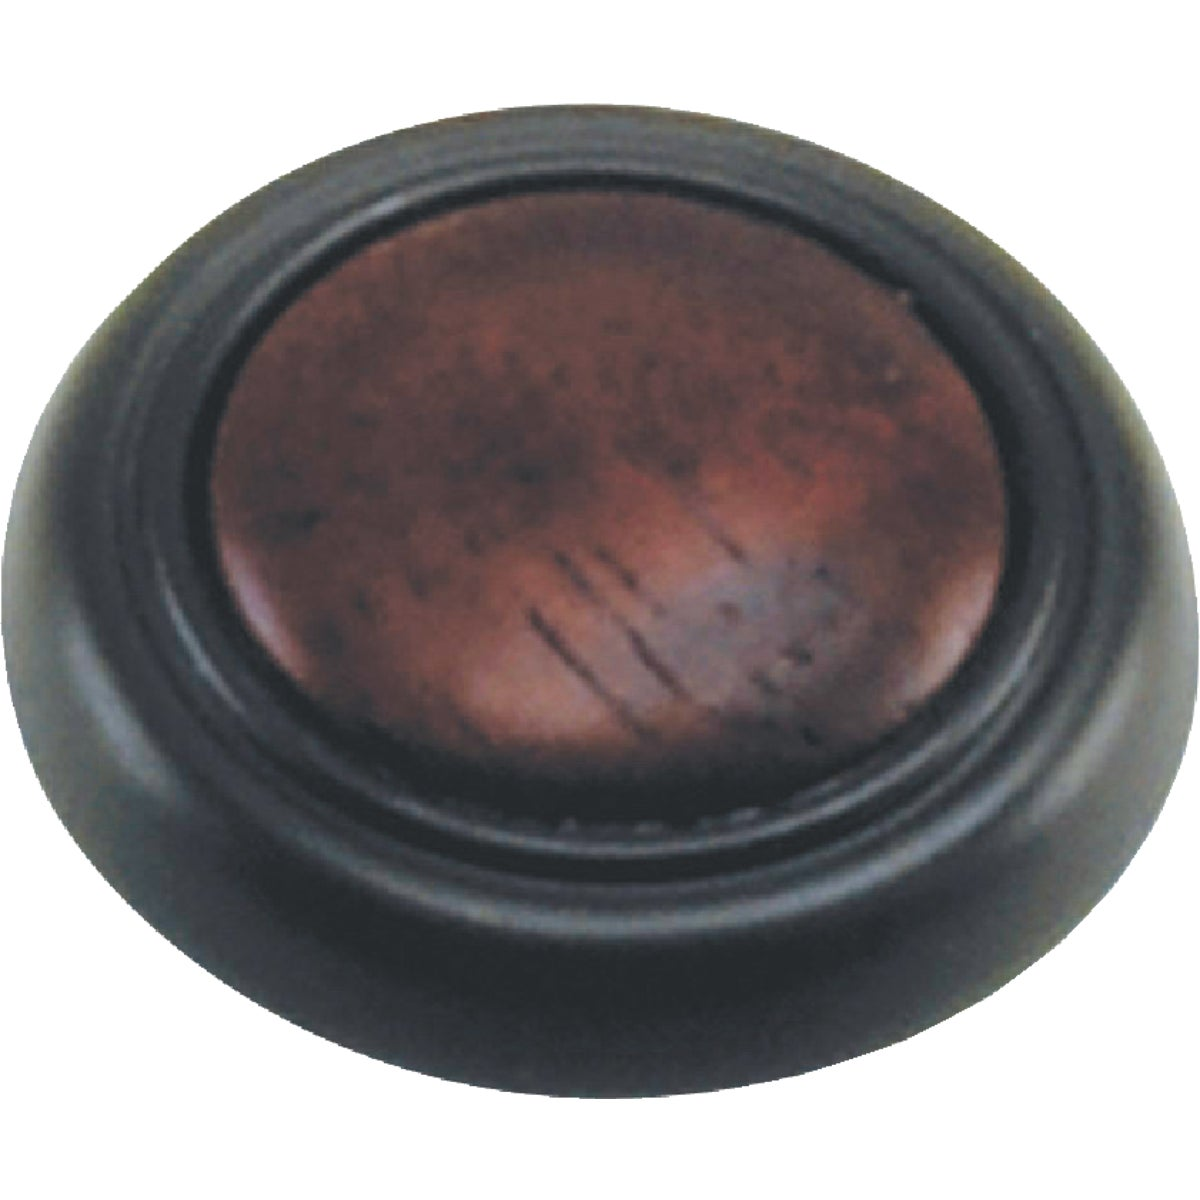 1-1/4 OIL RUBB BRZ KNOB - 15463 by Laurey Co